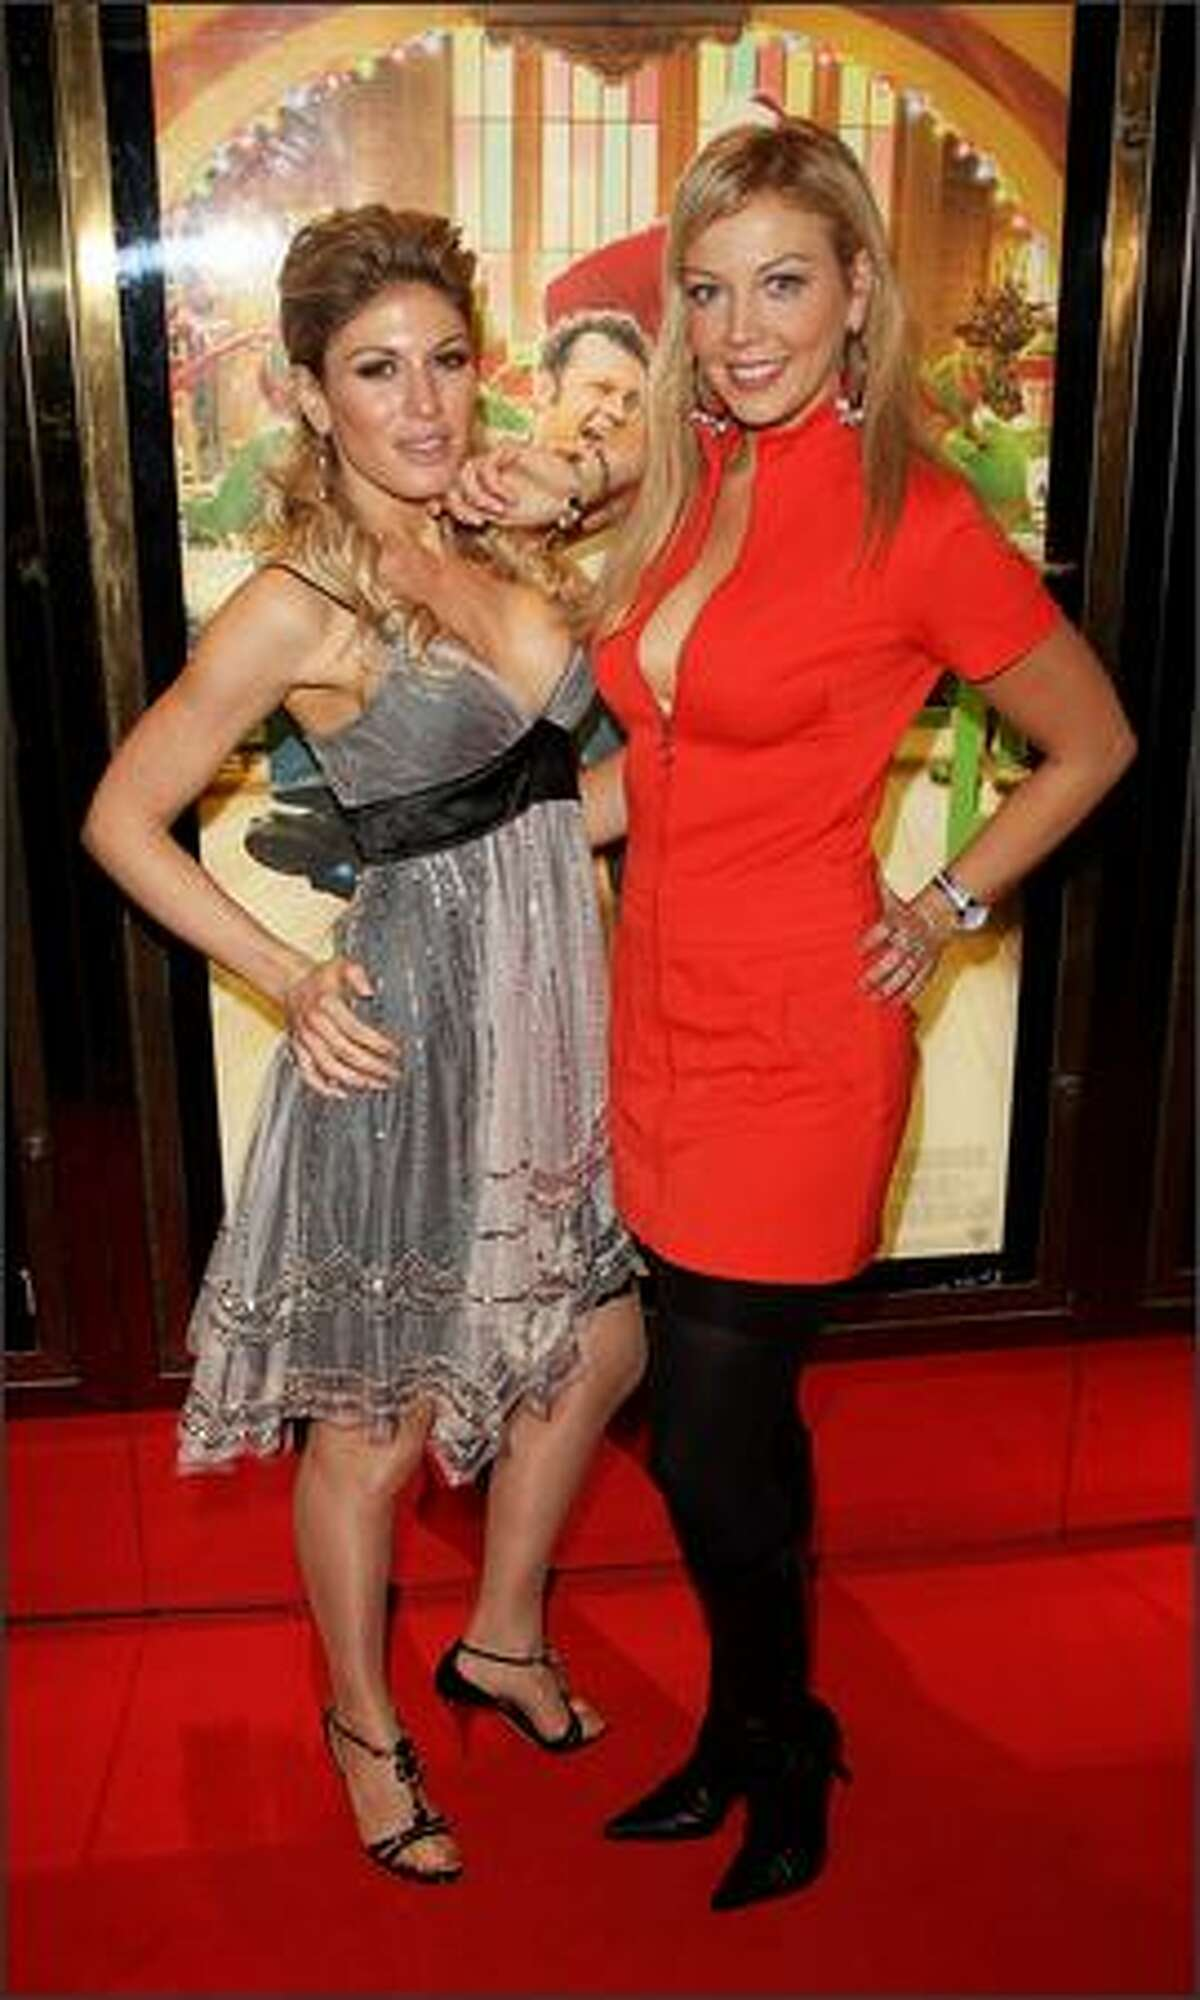 """TV presenter Liz Fuller (R) and model Hofit Golan arrive at the European premiere of """"Fred Claus"""" at the Empire Cinema Leicester Square on Monday in London, England."""